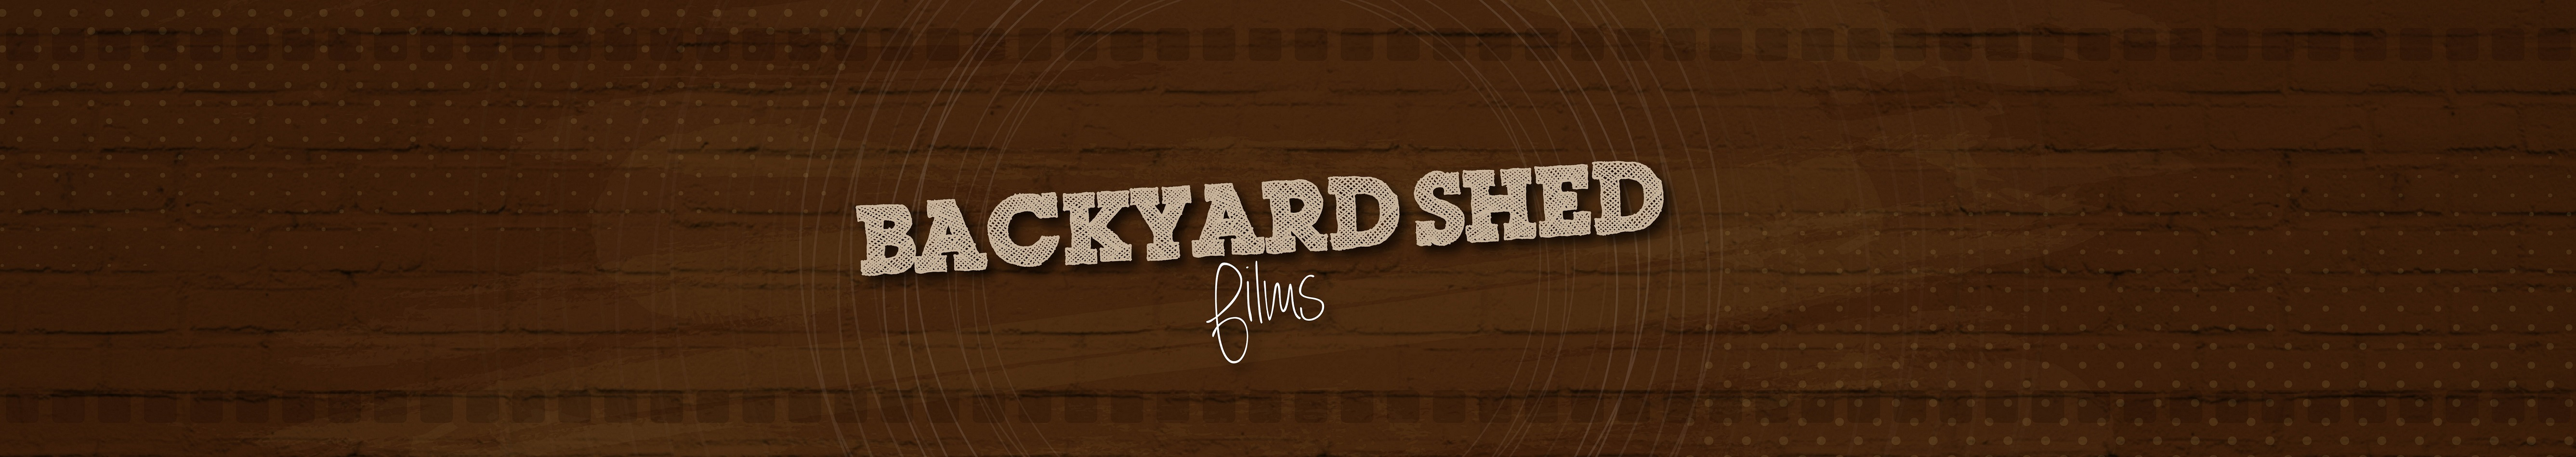 Home Page – Amazing Slider | Backyard Shed Films